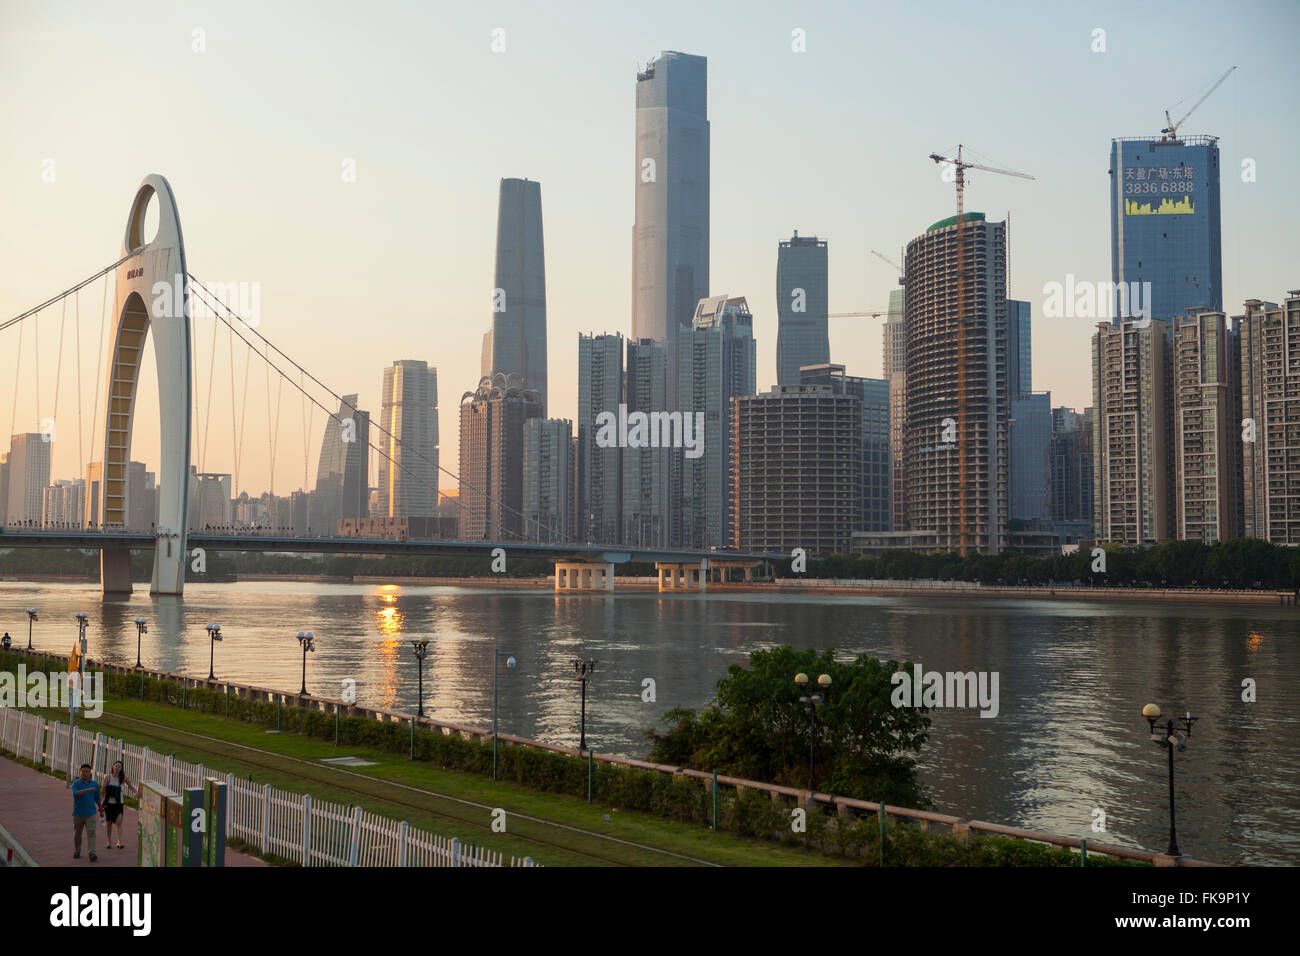 Leide Bridge and Pearl River, Guangzhou, China - Stock Image